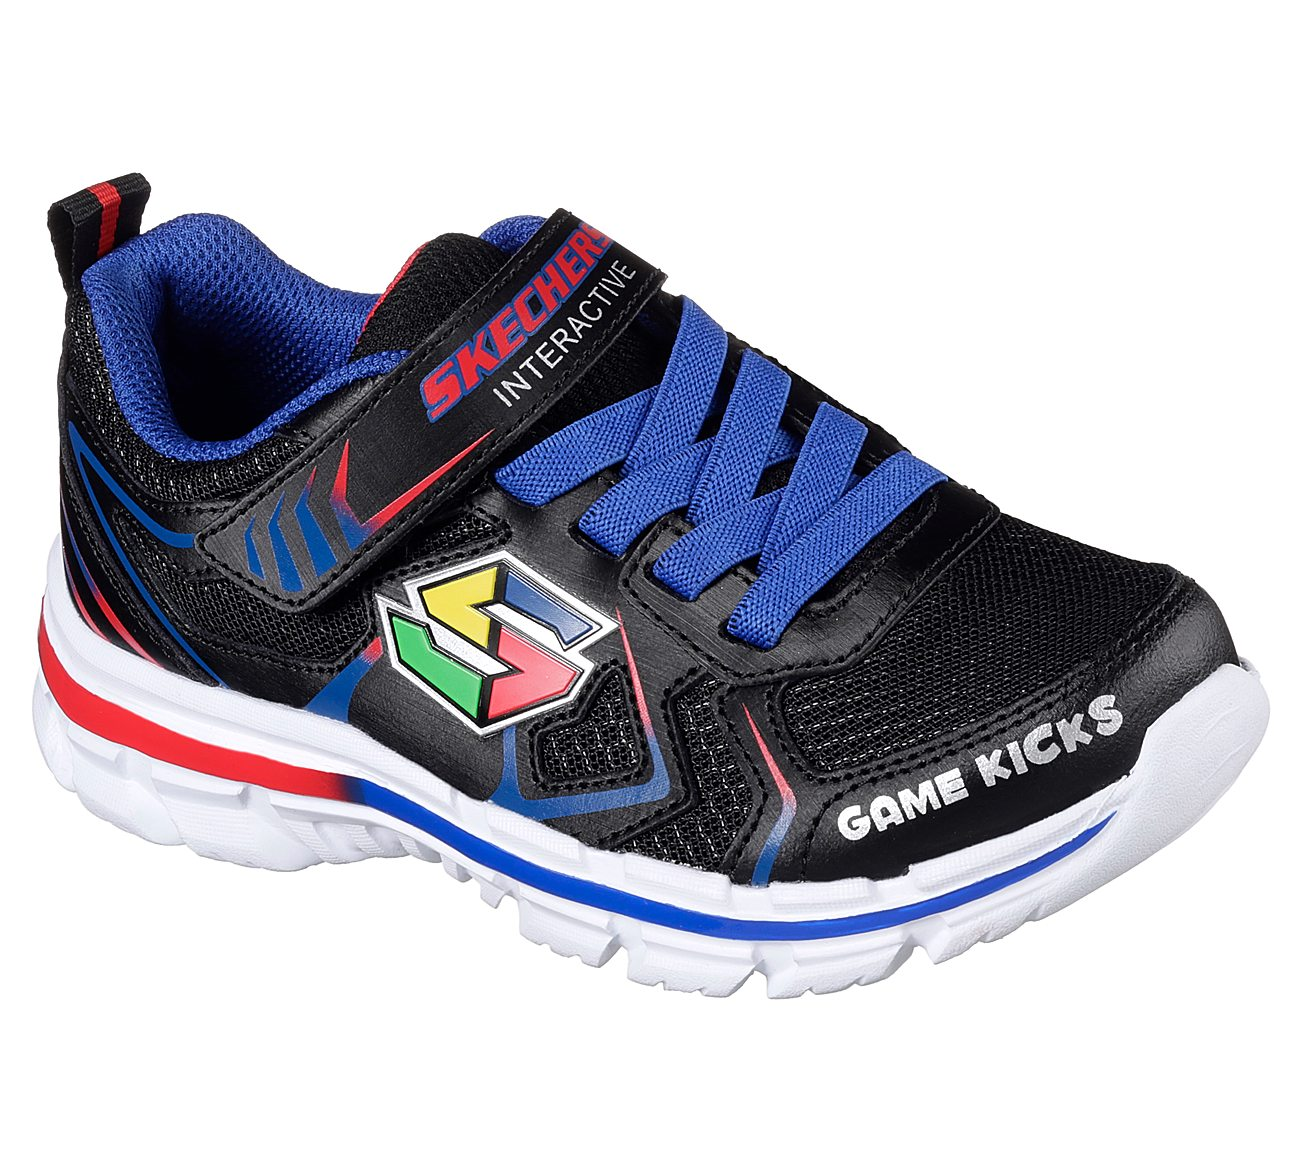 Skechers Nitrate Game Kicks Boys' Interactive Light Up Shoes